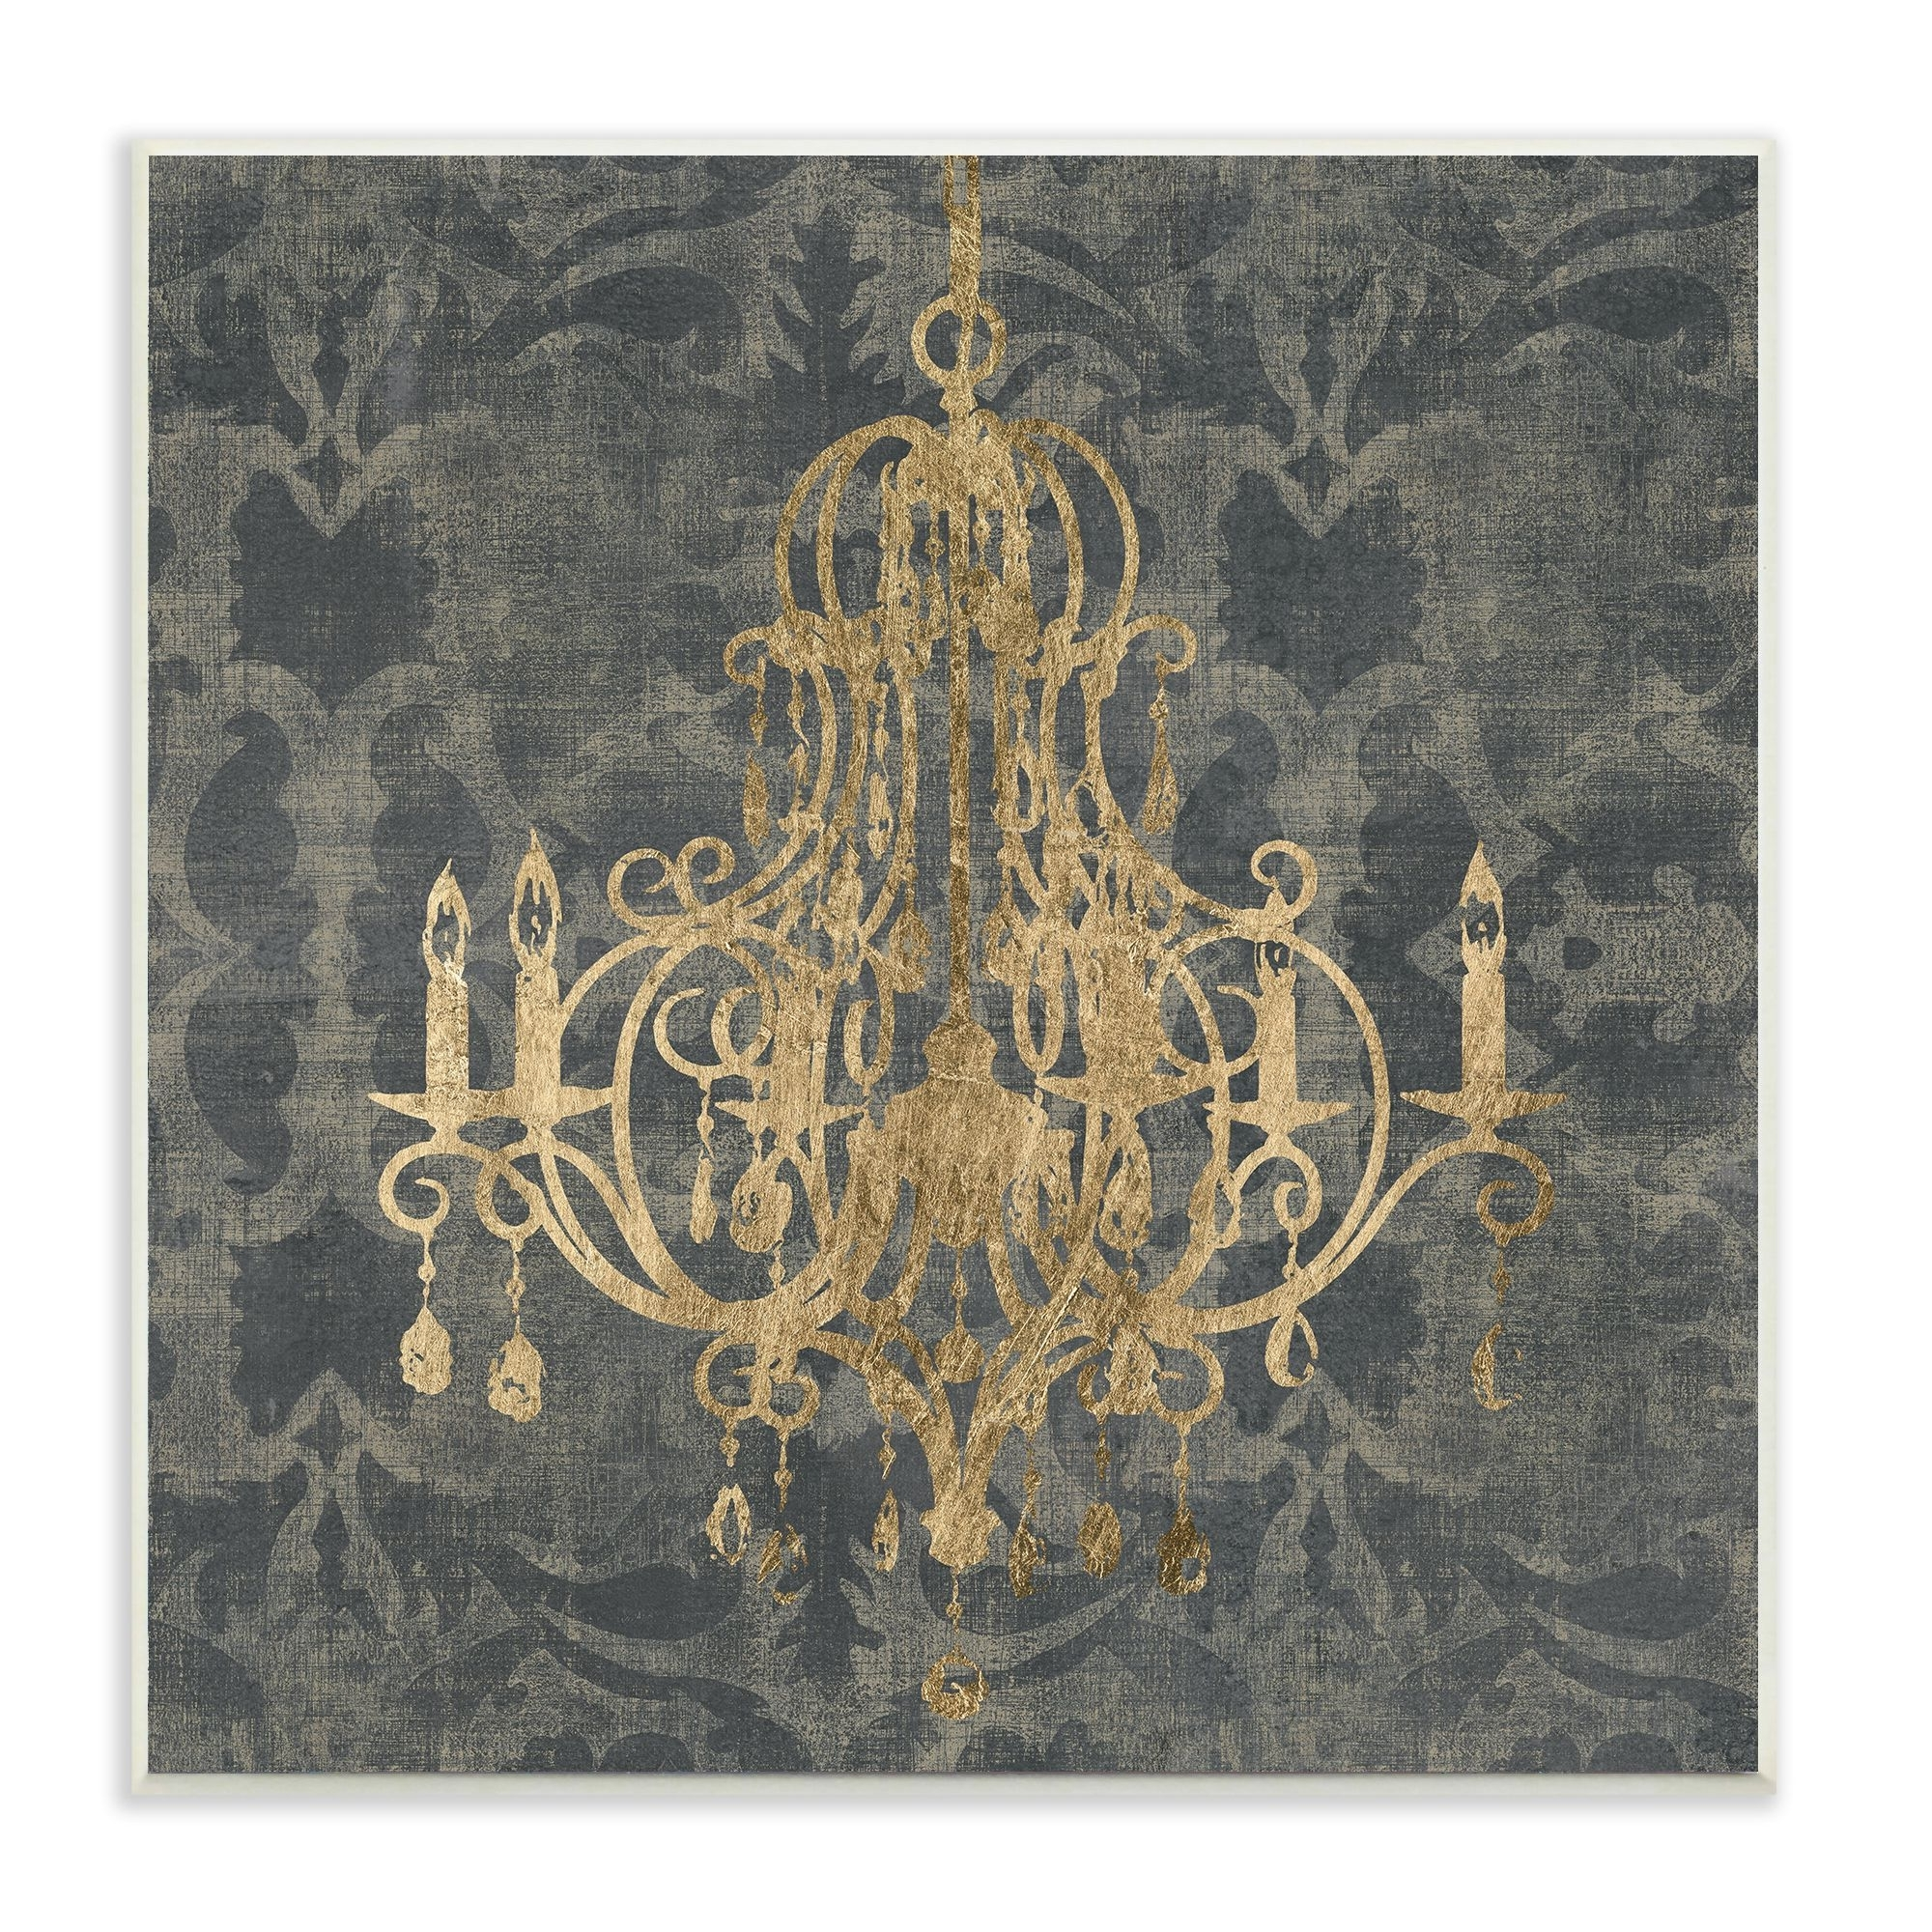 Well Known Chandelier Wall Art Intended For Stupell Wooden Damask Chandelier Themed Stretched Canvas Wall Art (View 5 of 15)